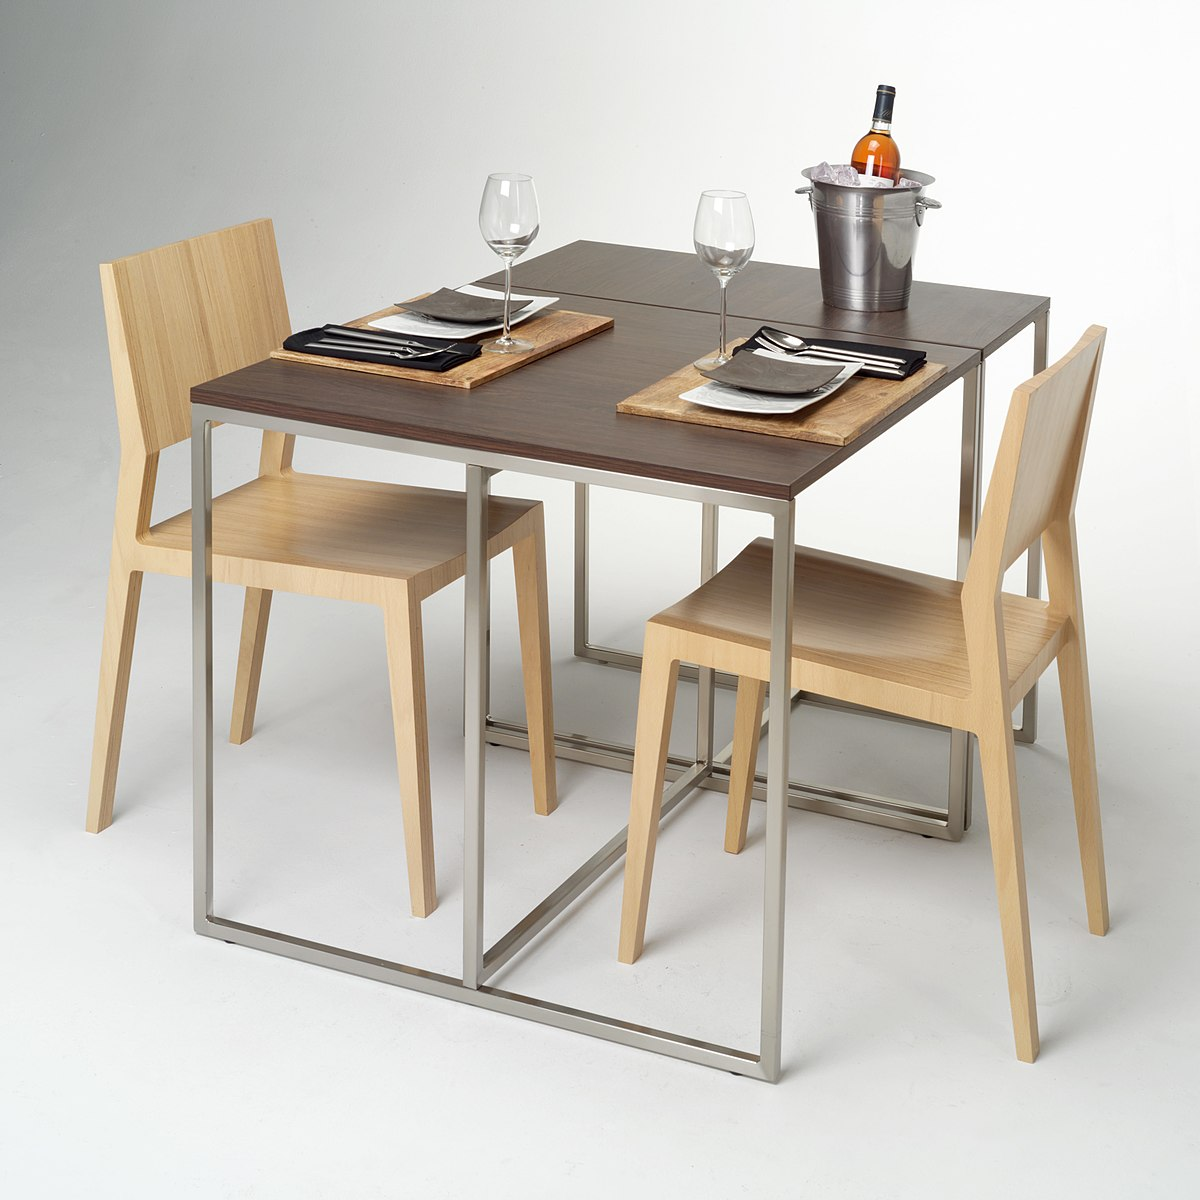 Furniture wikipedia for Wooden small dining table